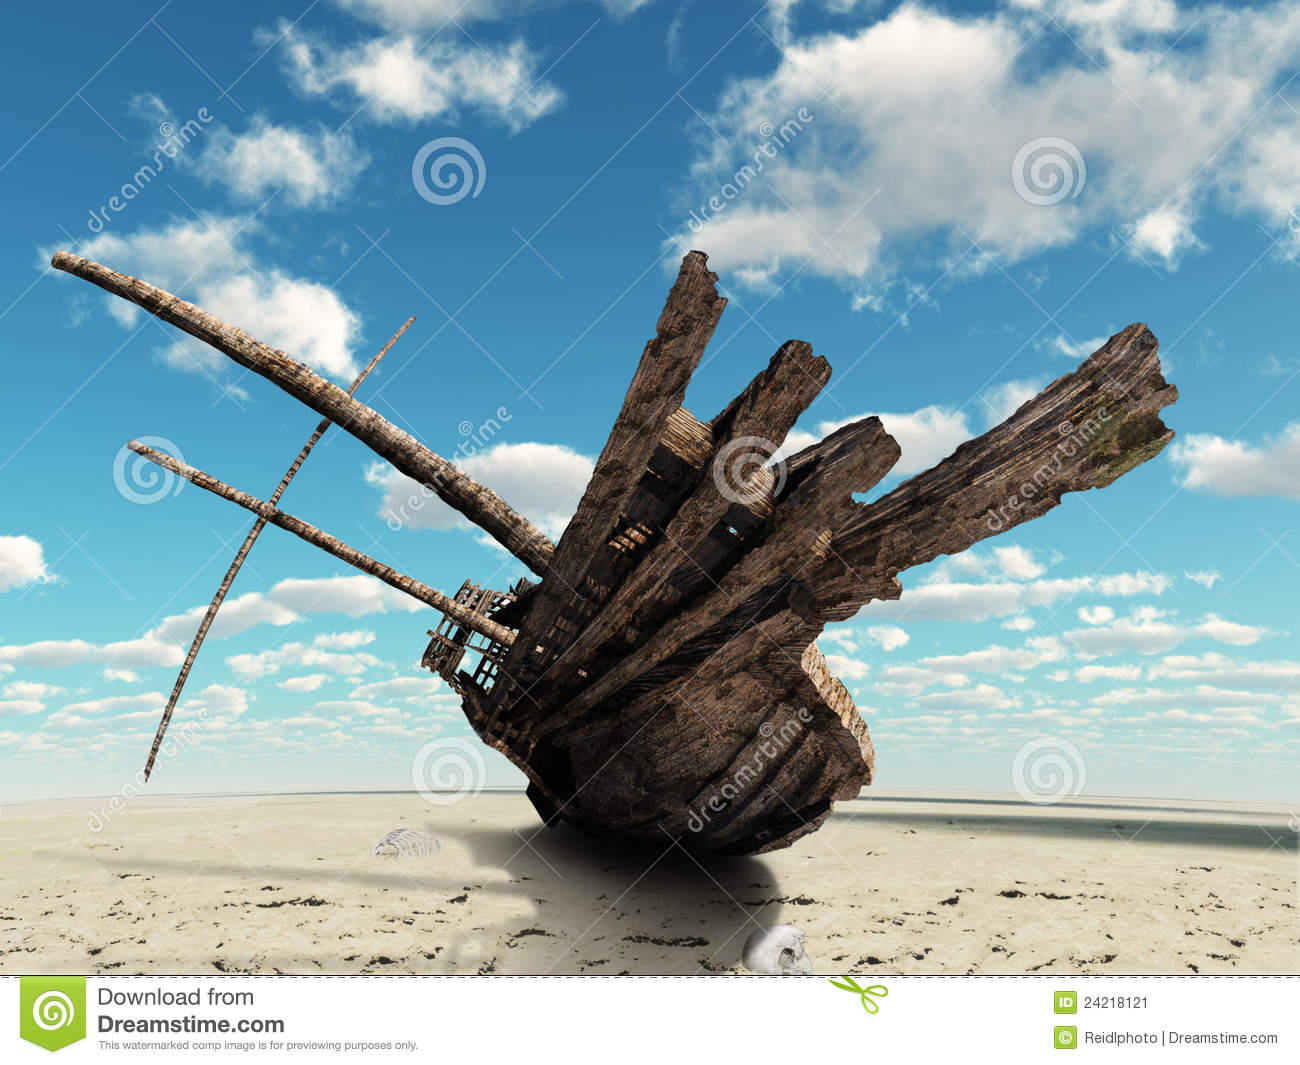 The Ship In The Dried Up Sea Stock Image - Image: 24218121